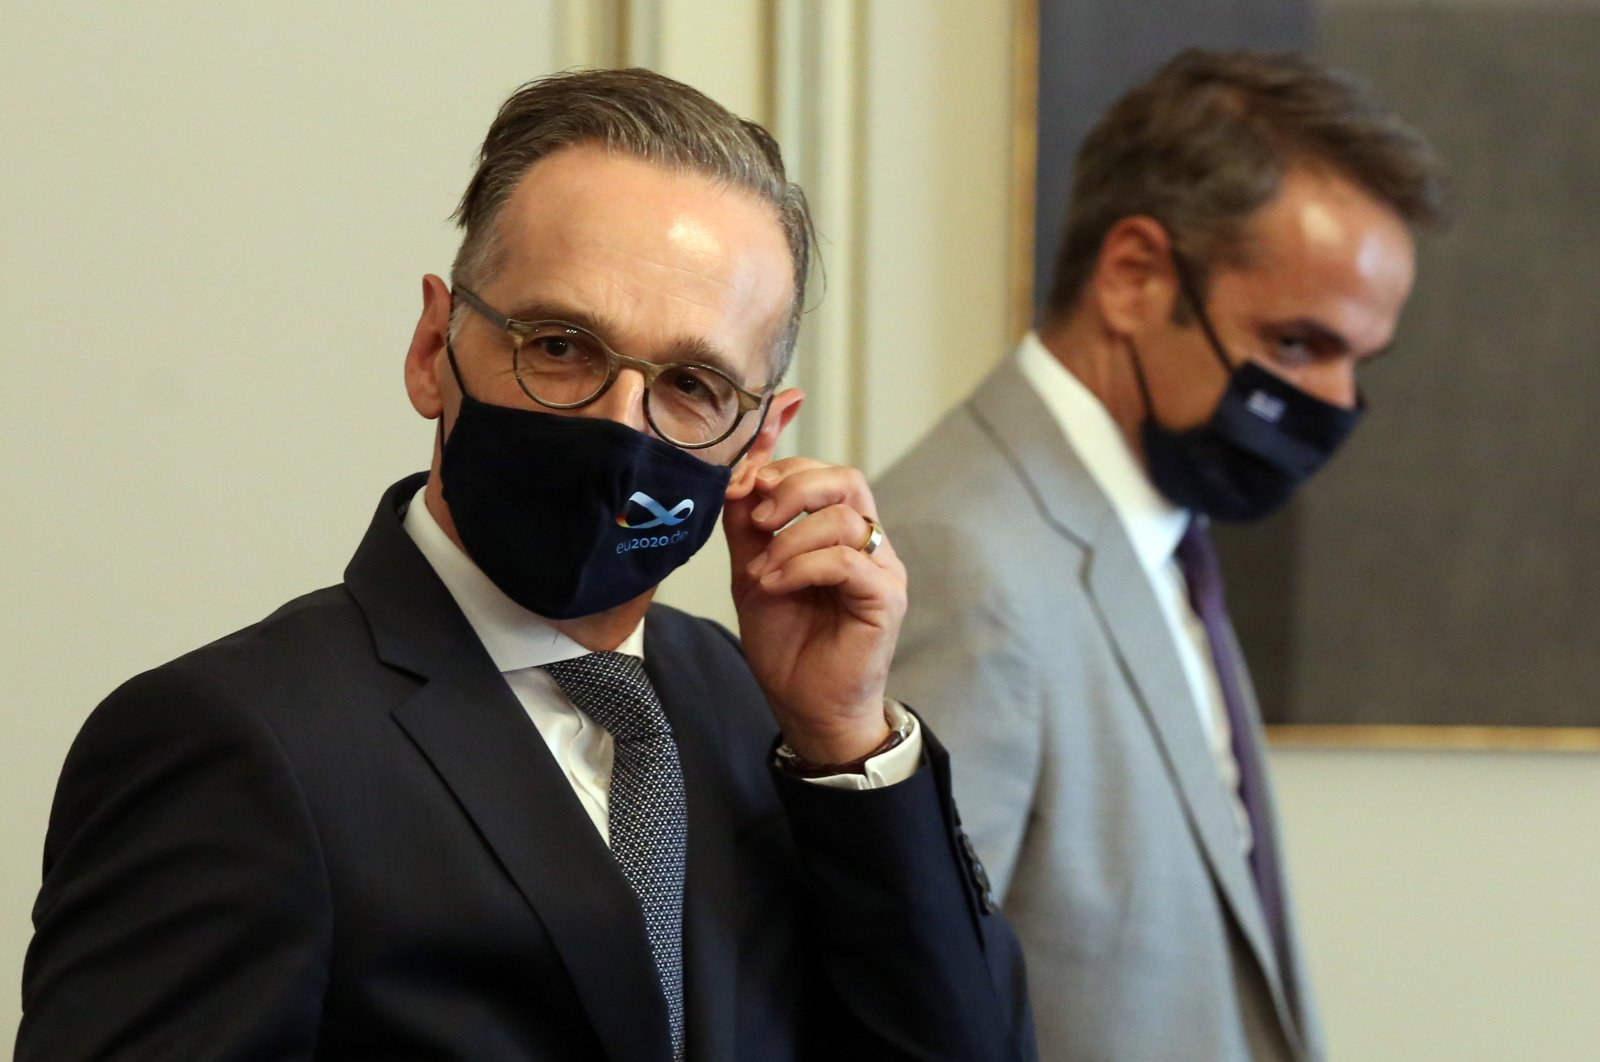 Foreign Minister of Germany Heiko Maas (L) takes off his mask during his meeting with Greek Prime Minister Kyriakos Mitsotakis (R), in Athens, Greece, Aug. 25, 2020. (EPA Photo)